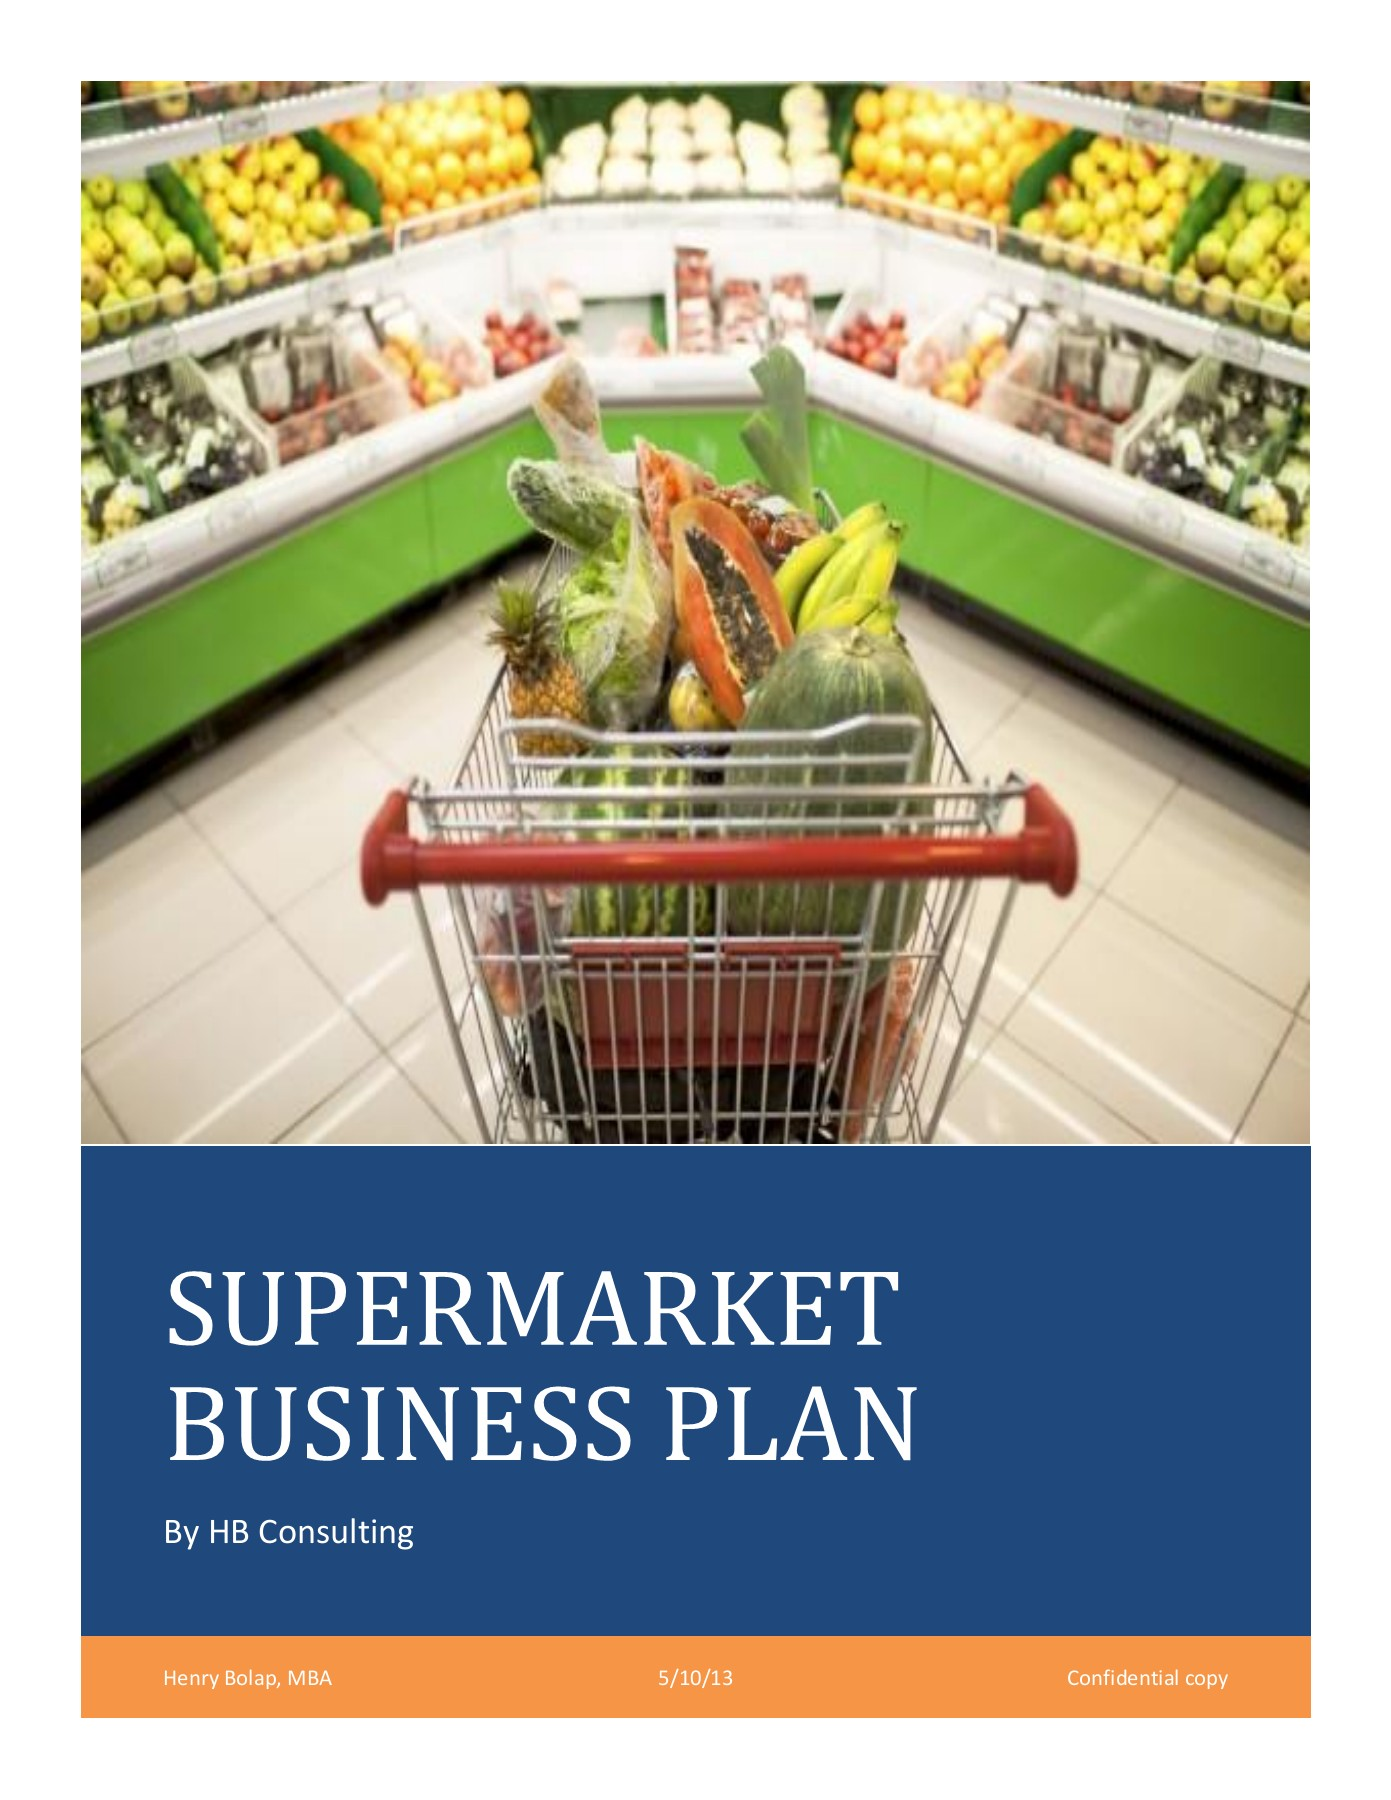 Green grocer business plan sample of a dissertation abstract